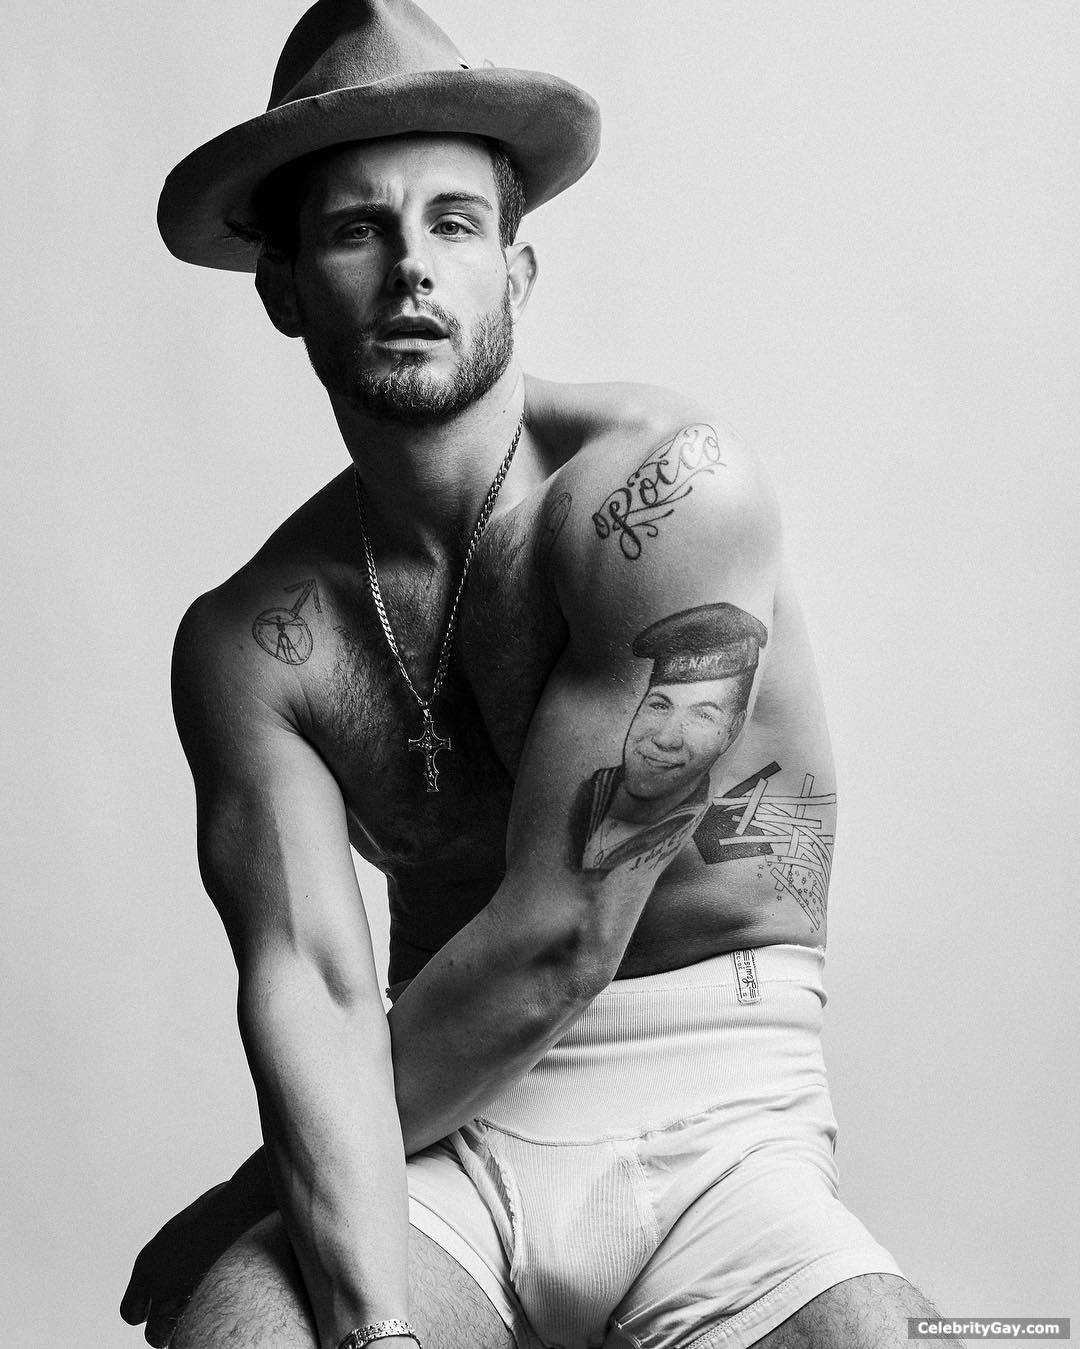 NICO TORTORELLA #HUNKOFTHEWEEK - Pink In Our Lives - The